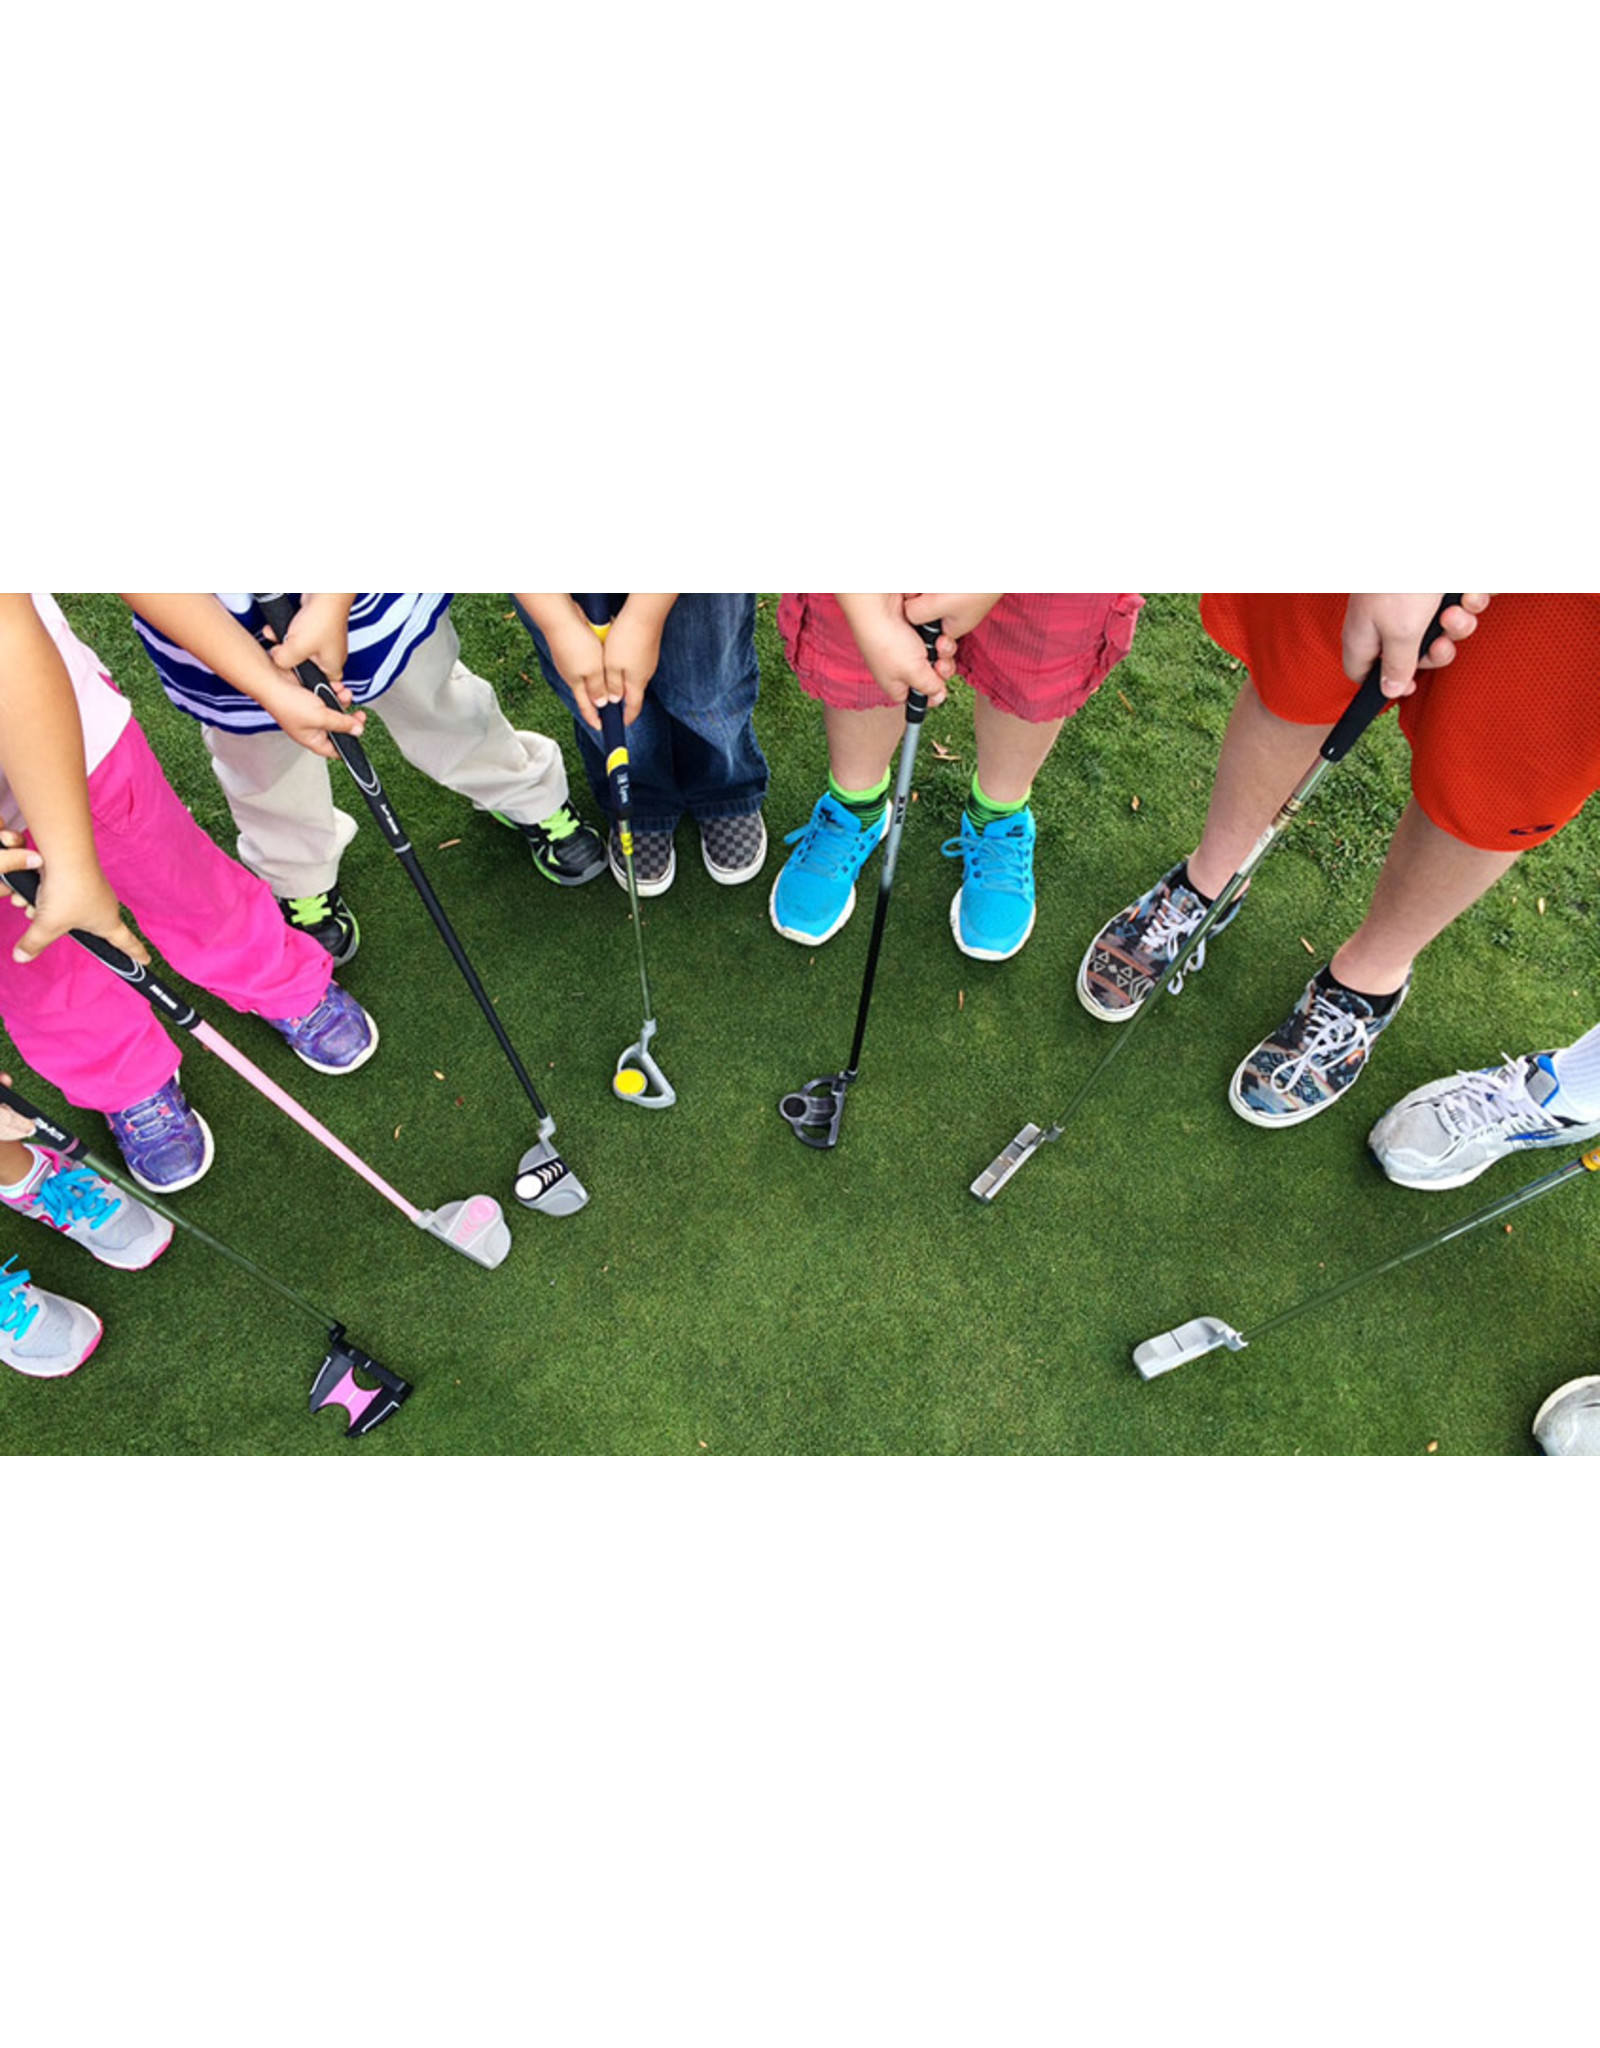 Ages 5-7 Level 1 Session #10 Sept 8,15,22 4:15-5:00pm